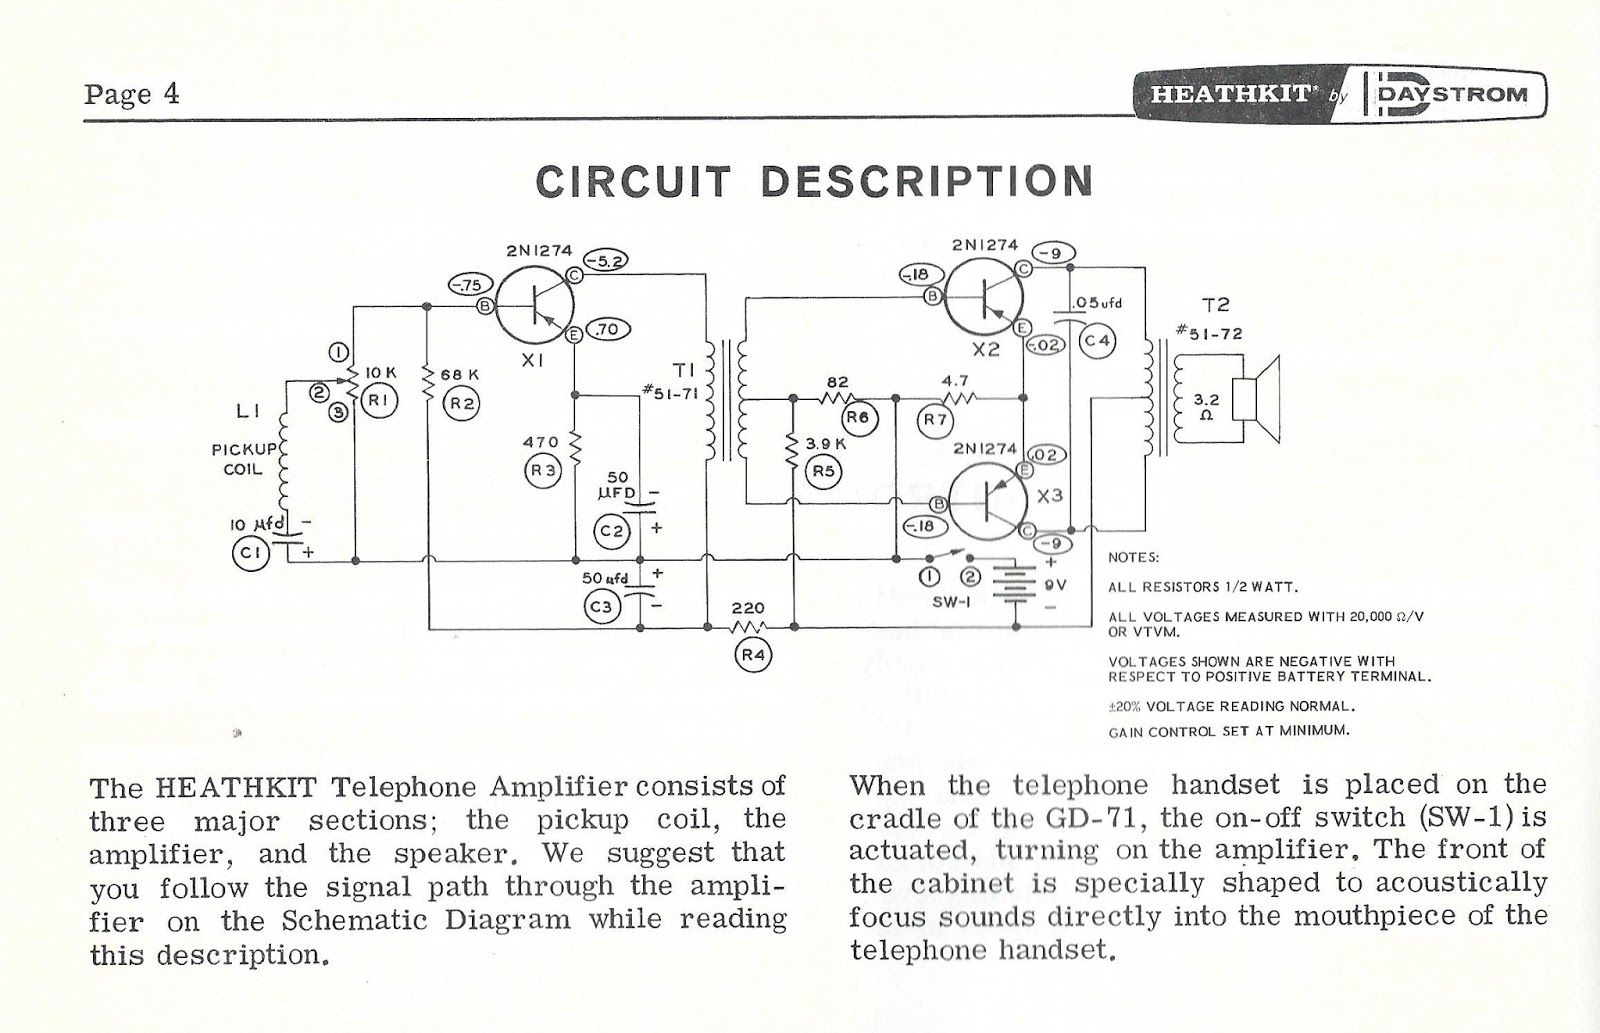 small resolution of all of the telephone amplifiers had the typical circuit design except for ampliphone and heathkit amps